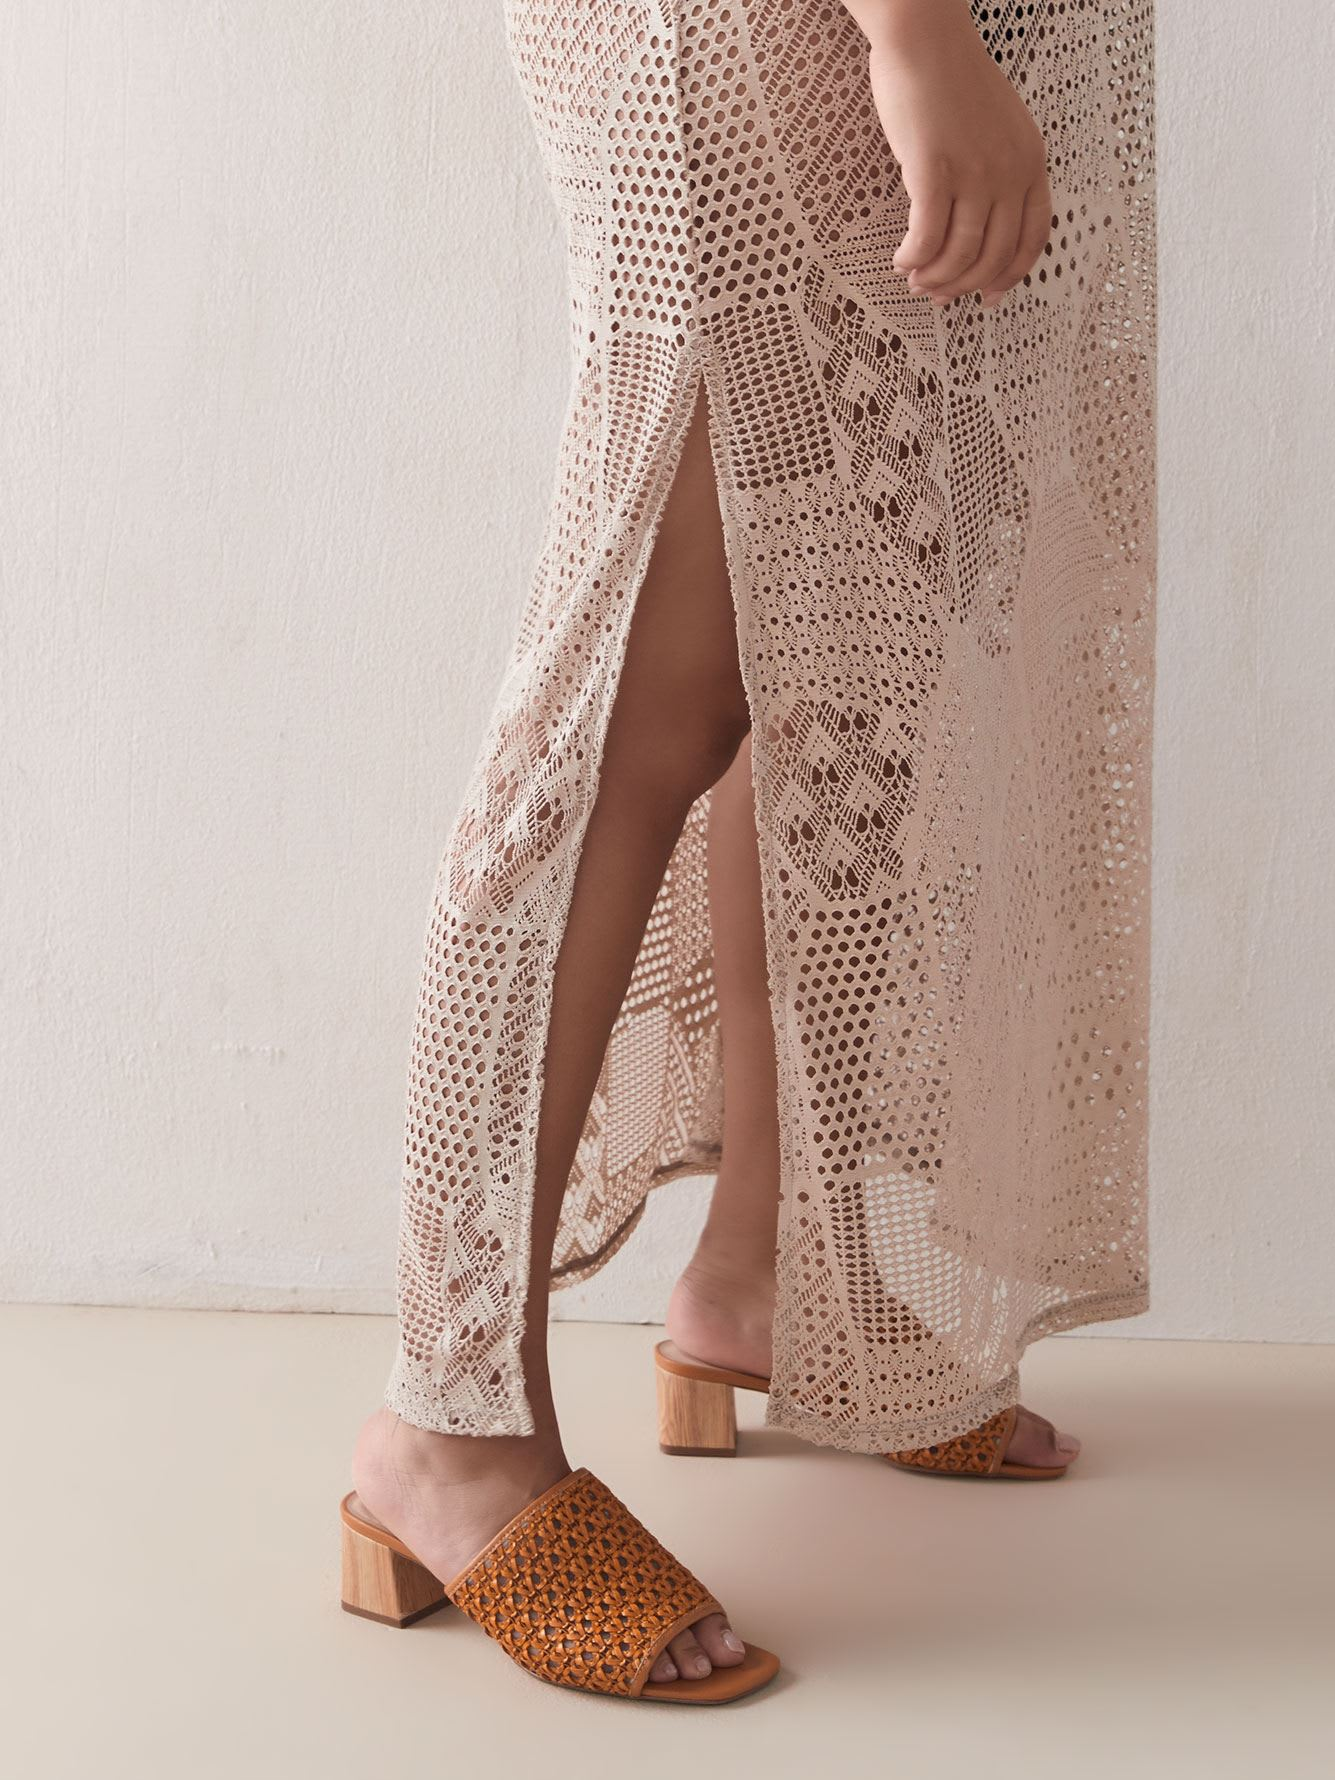 Sandy Bay Crochet Maxi Dress - Cover Me